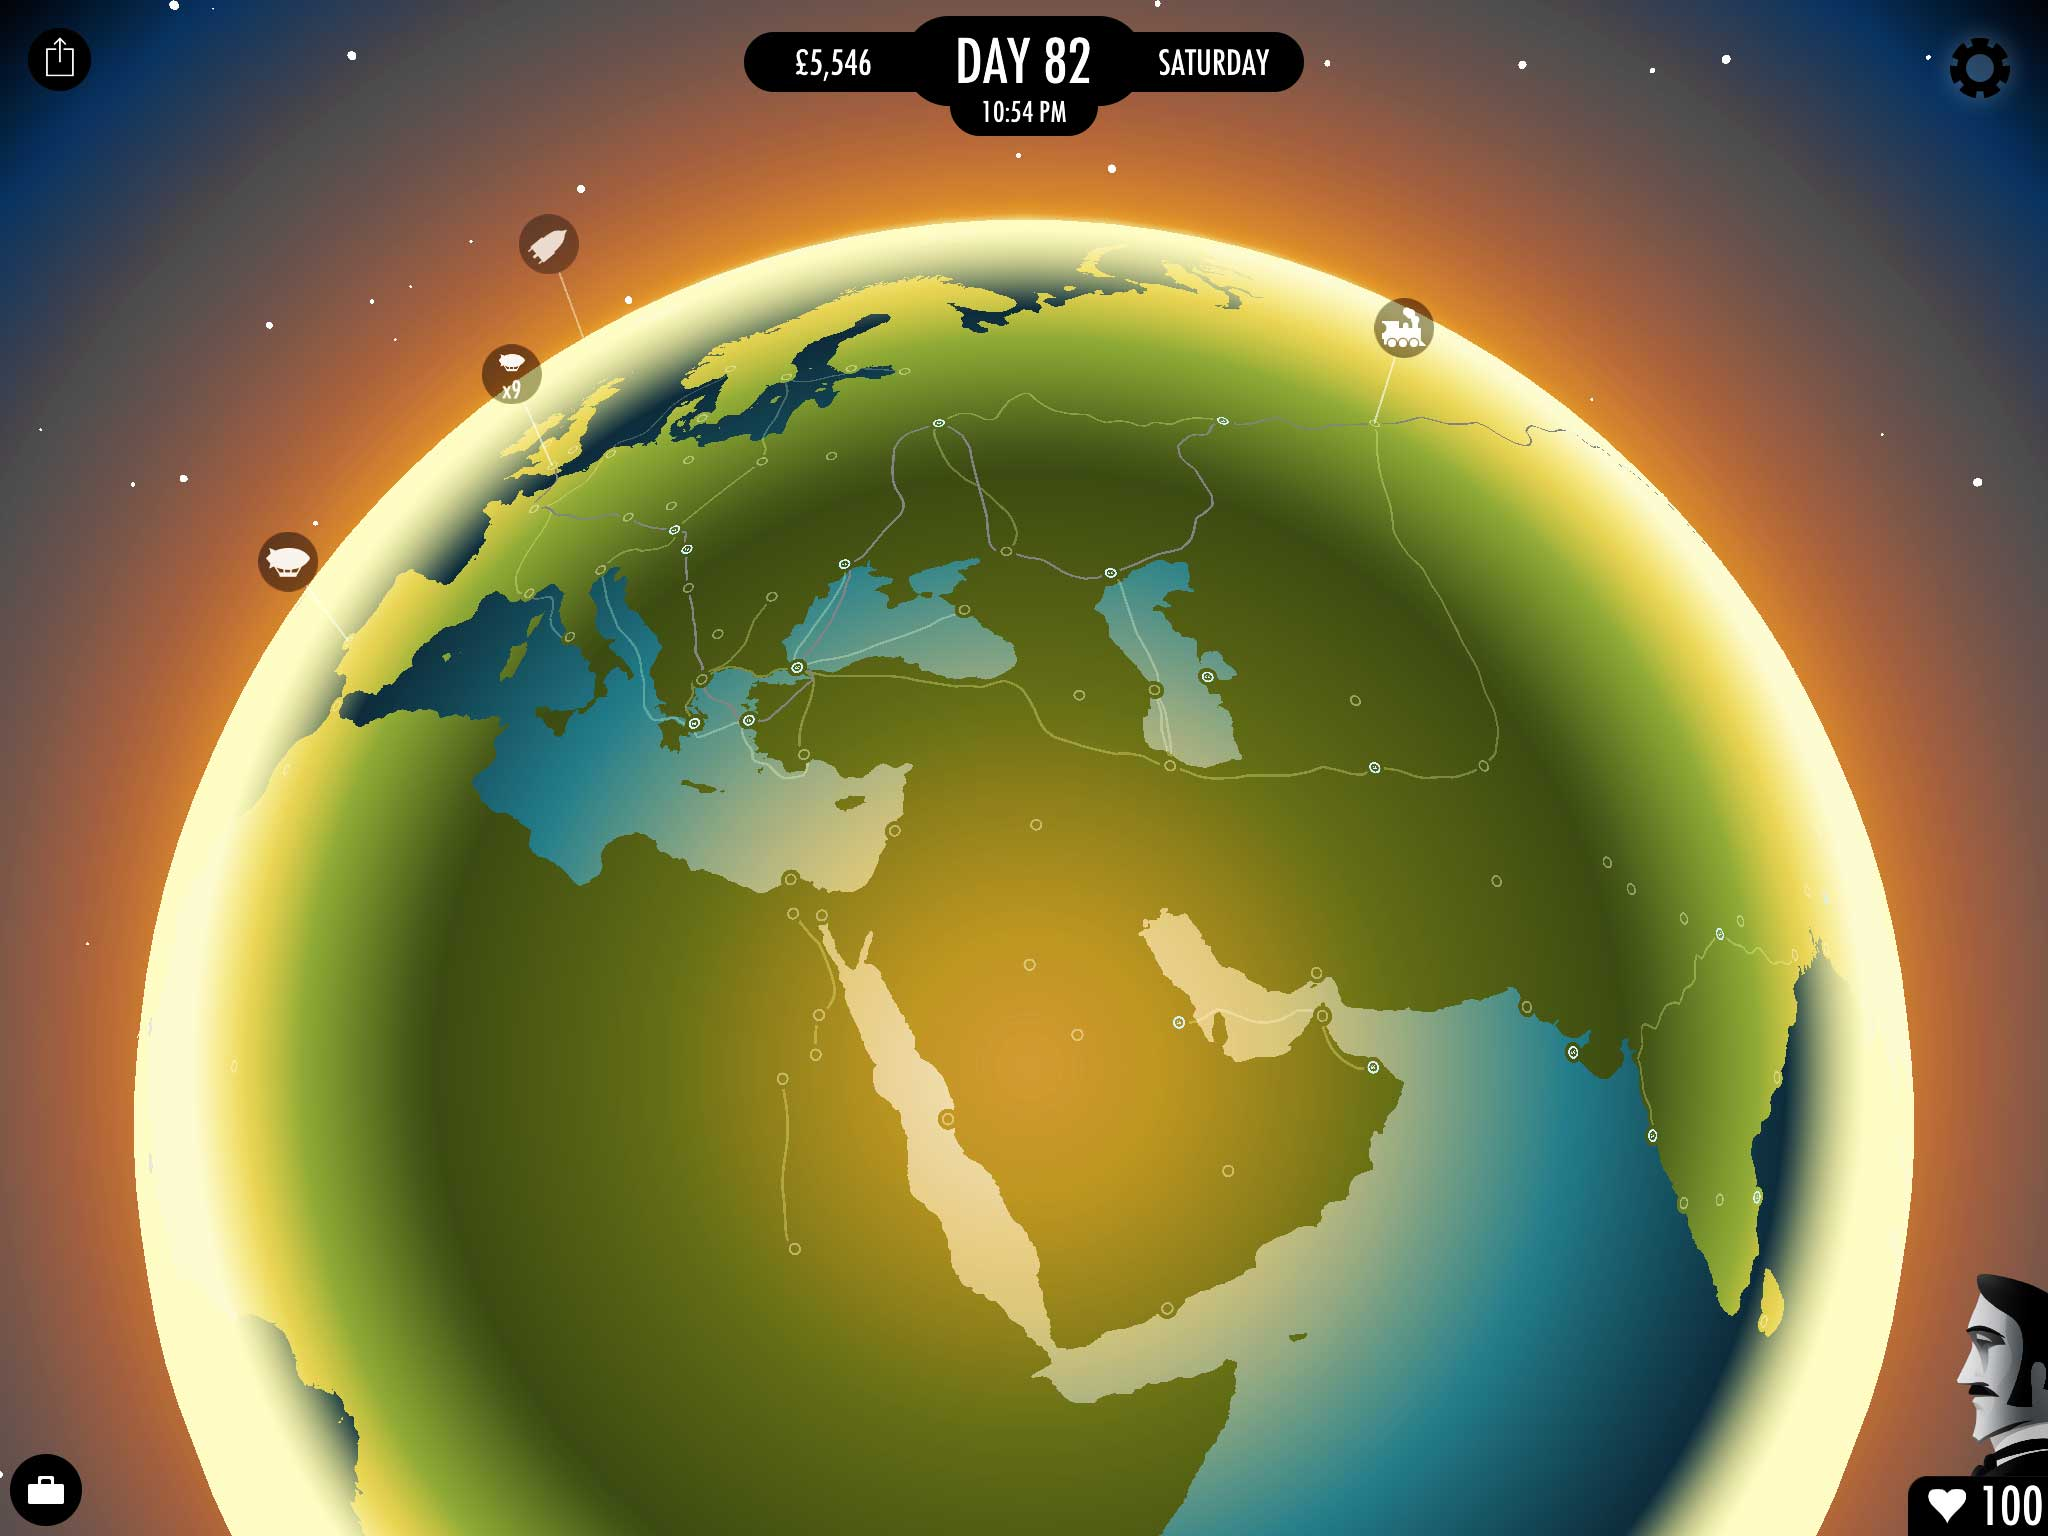 <strong>80 Days</strong>                                                                          Inkle's anti-colonialist vamp on Jules Verne's famous novel uses crisp art deco imagery inspired by travel posters to unfurl <i>80 Days</i>' tale of intrepid globetrotters Monsieur Fogg and his valet Passepartout.